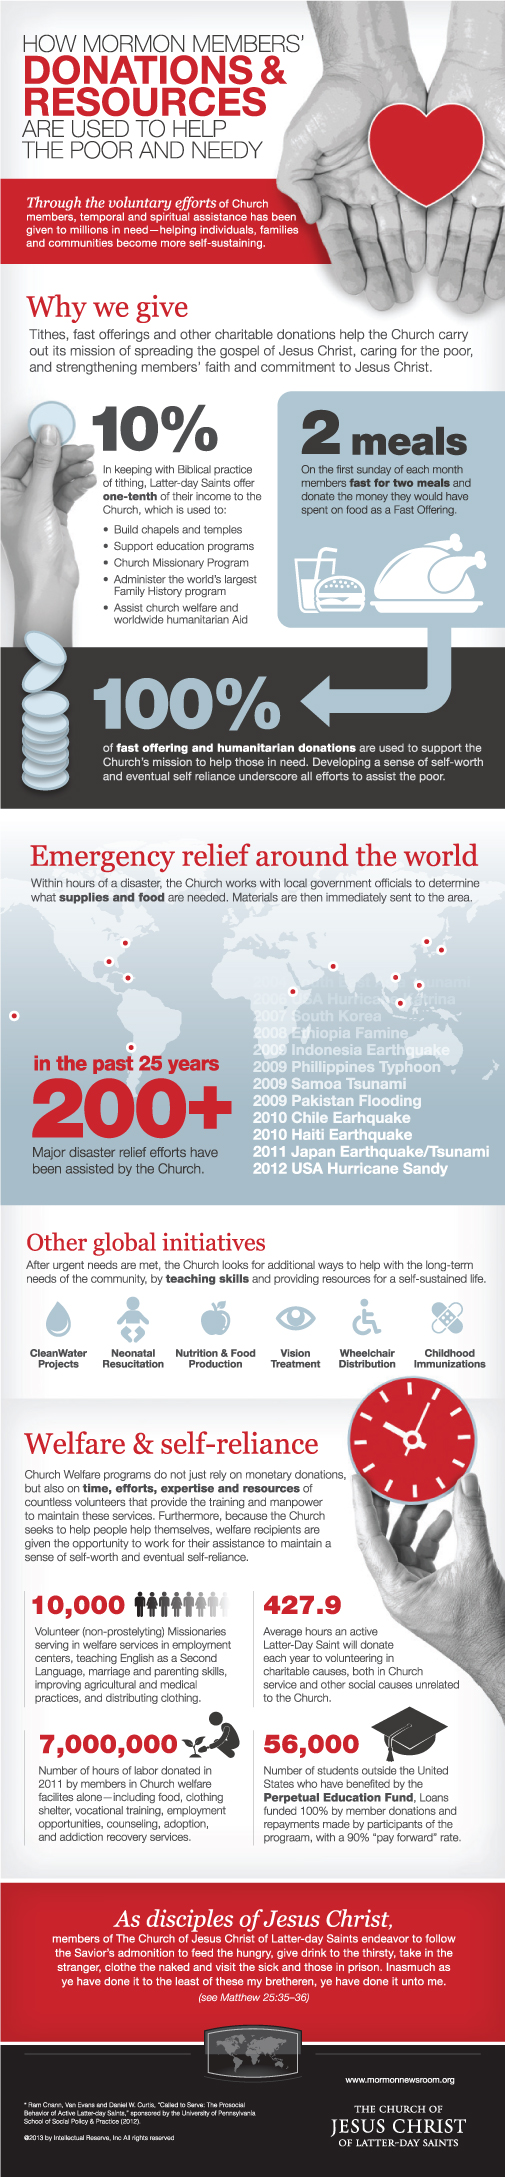 Church of Jesus Christ of Latter Day Saints Donations Infographic